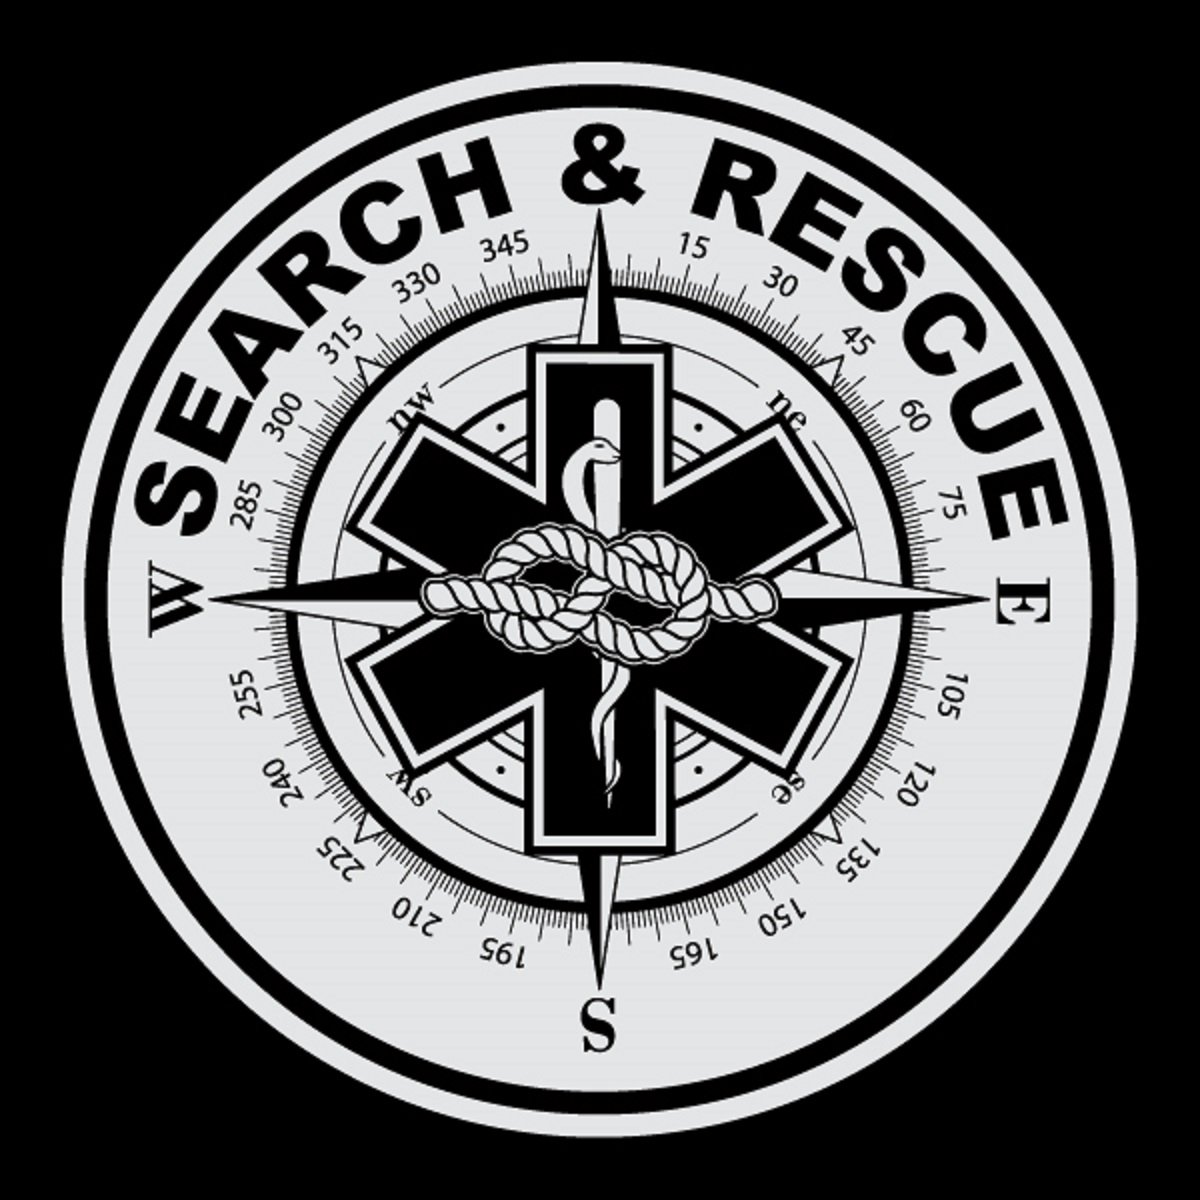 Search & Rescue Small Round Reflective Decal Sticker - Package of 6